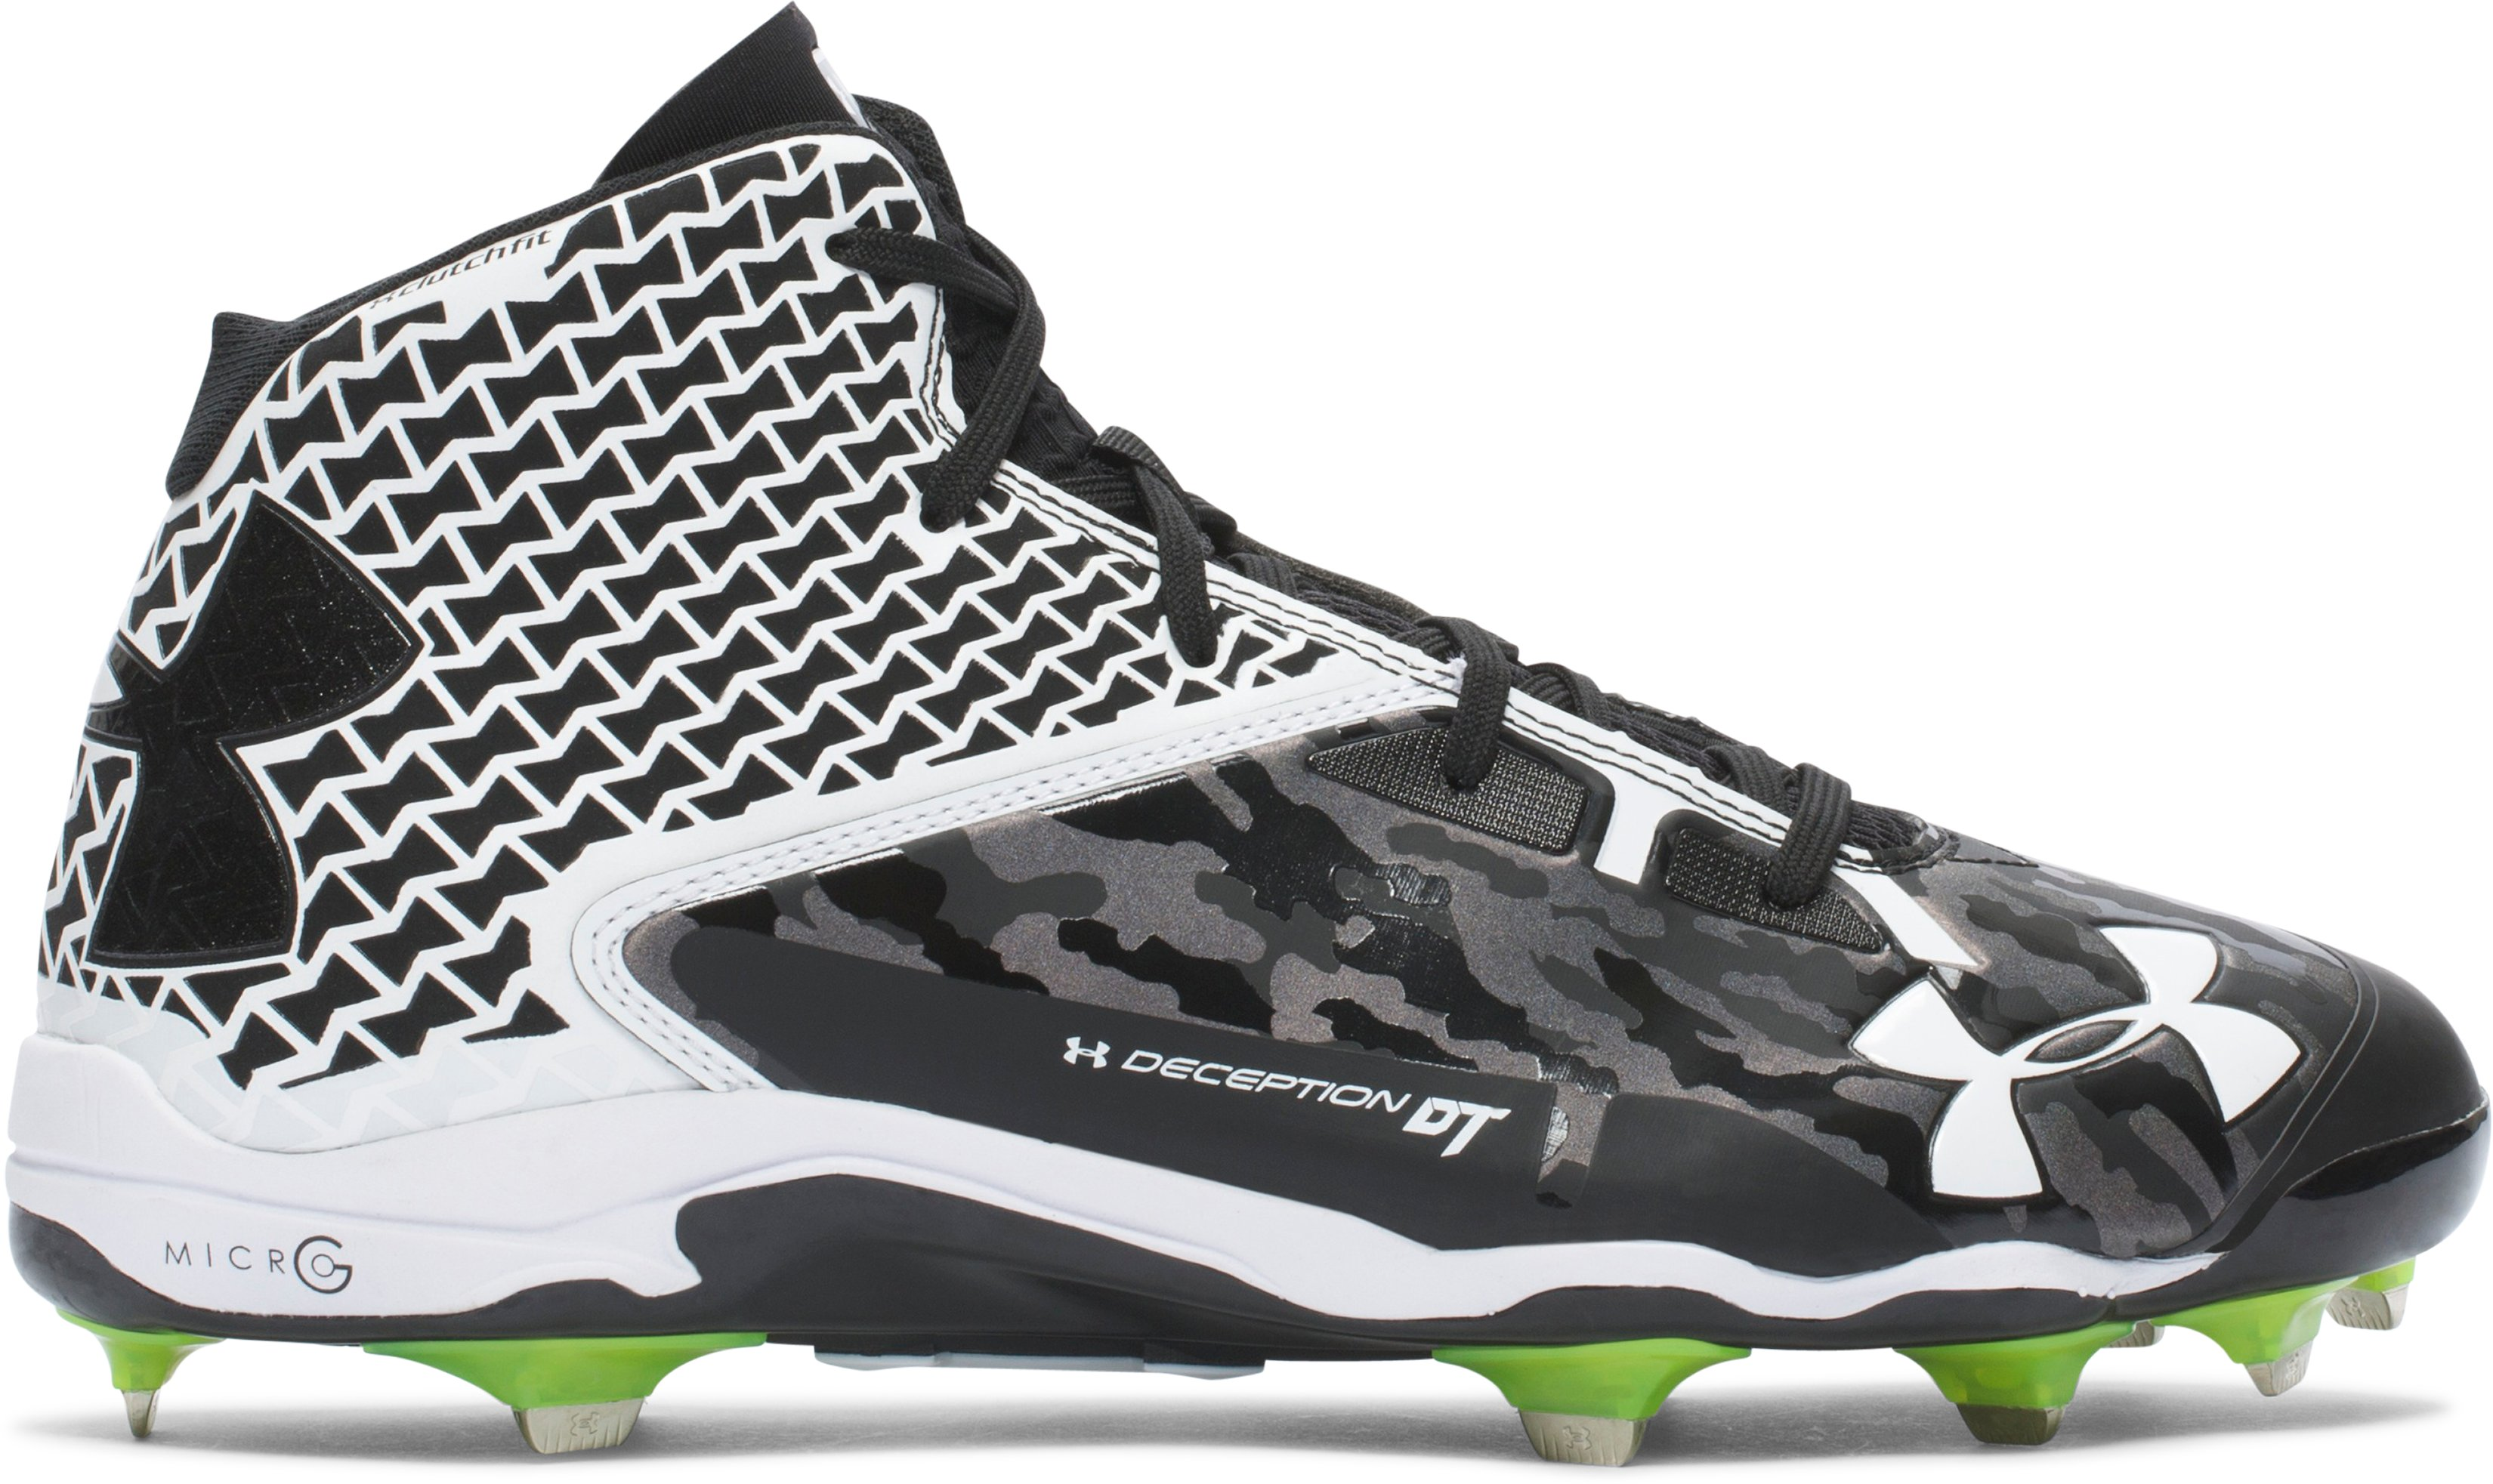 Men's UA Deception Mid DiamondTips Baseball Cleats — All-Star Game Edition, Black